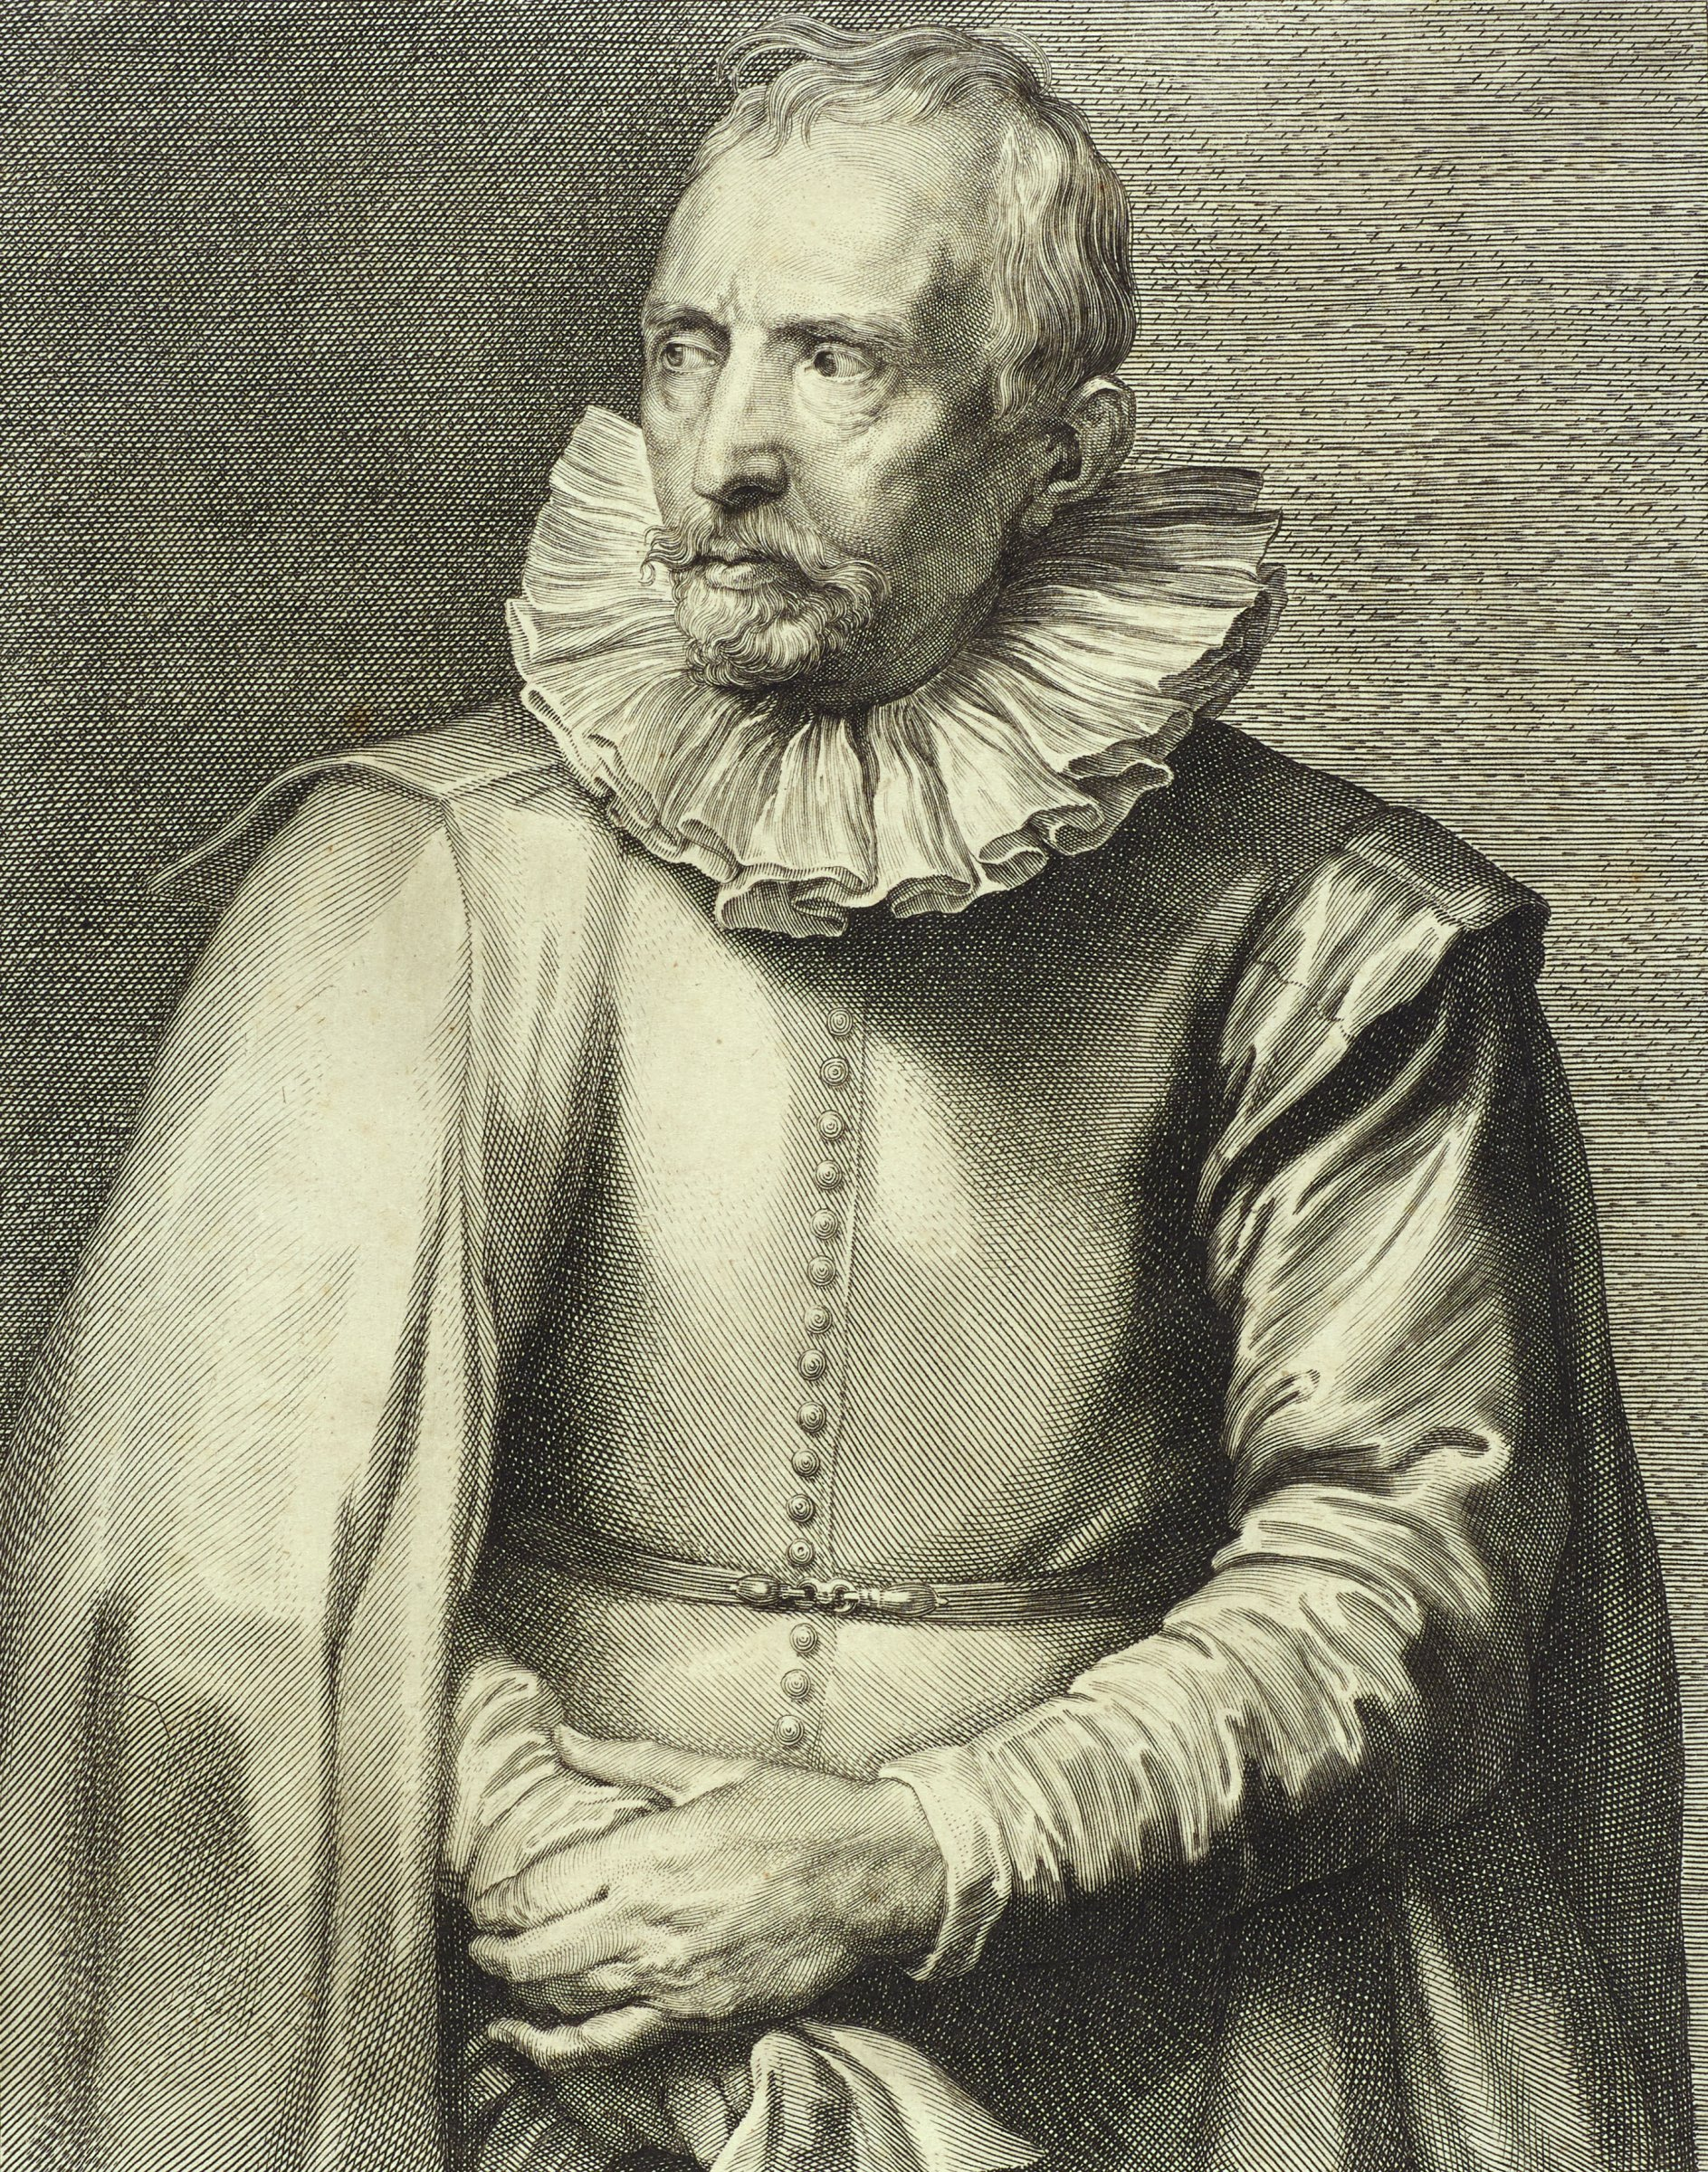 Cornelis van der Geest was a merchant and art collector. He is seen here in portrait from the waist up. He wears a ruff and a cloak hanging over his right arm. He looks to the proper right and crosses his arms at his stomach. This image is from the Gillis Hendricx edition of the Iconography (Icones Principum Virorum Doctorum, Pictorum Chalcographorum Statuorum nec non Amatorum Pictoriae Artis Numero Centum), 1632-44.